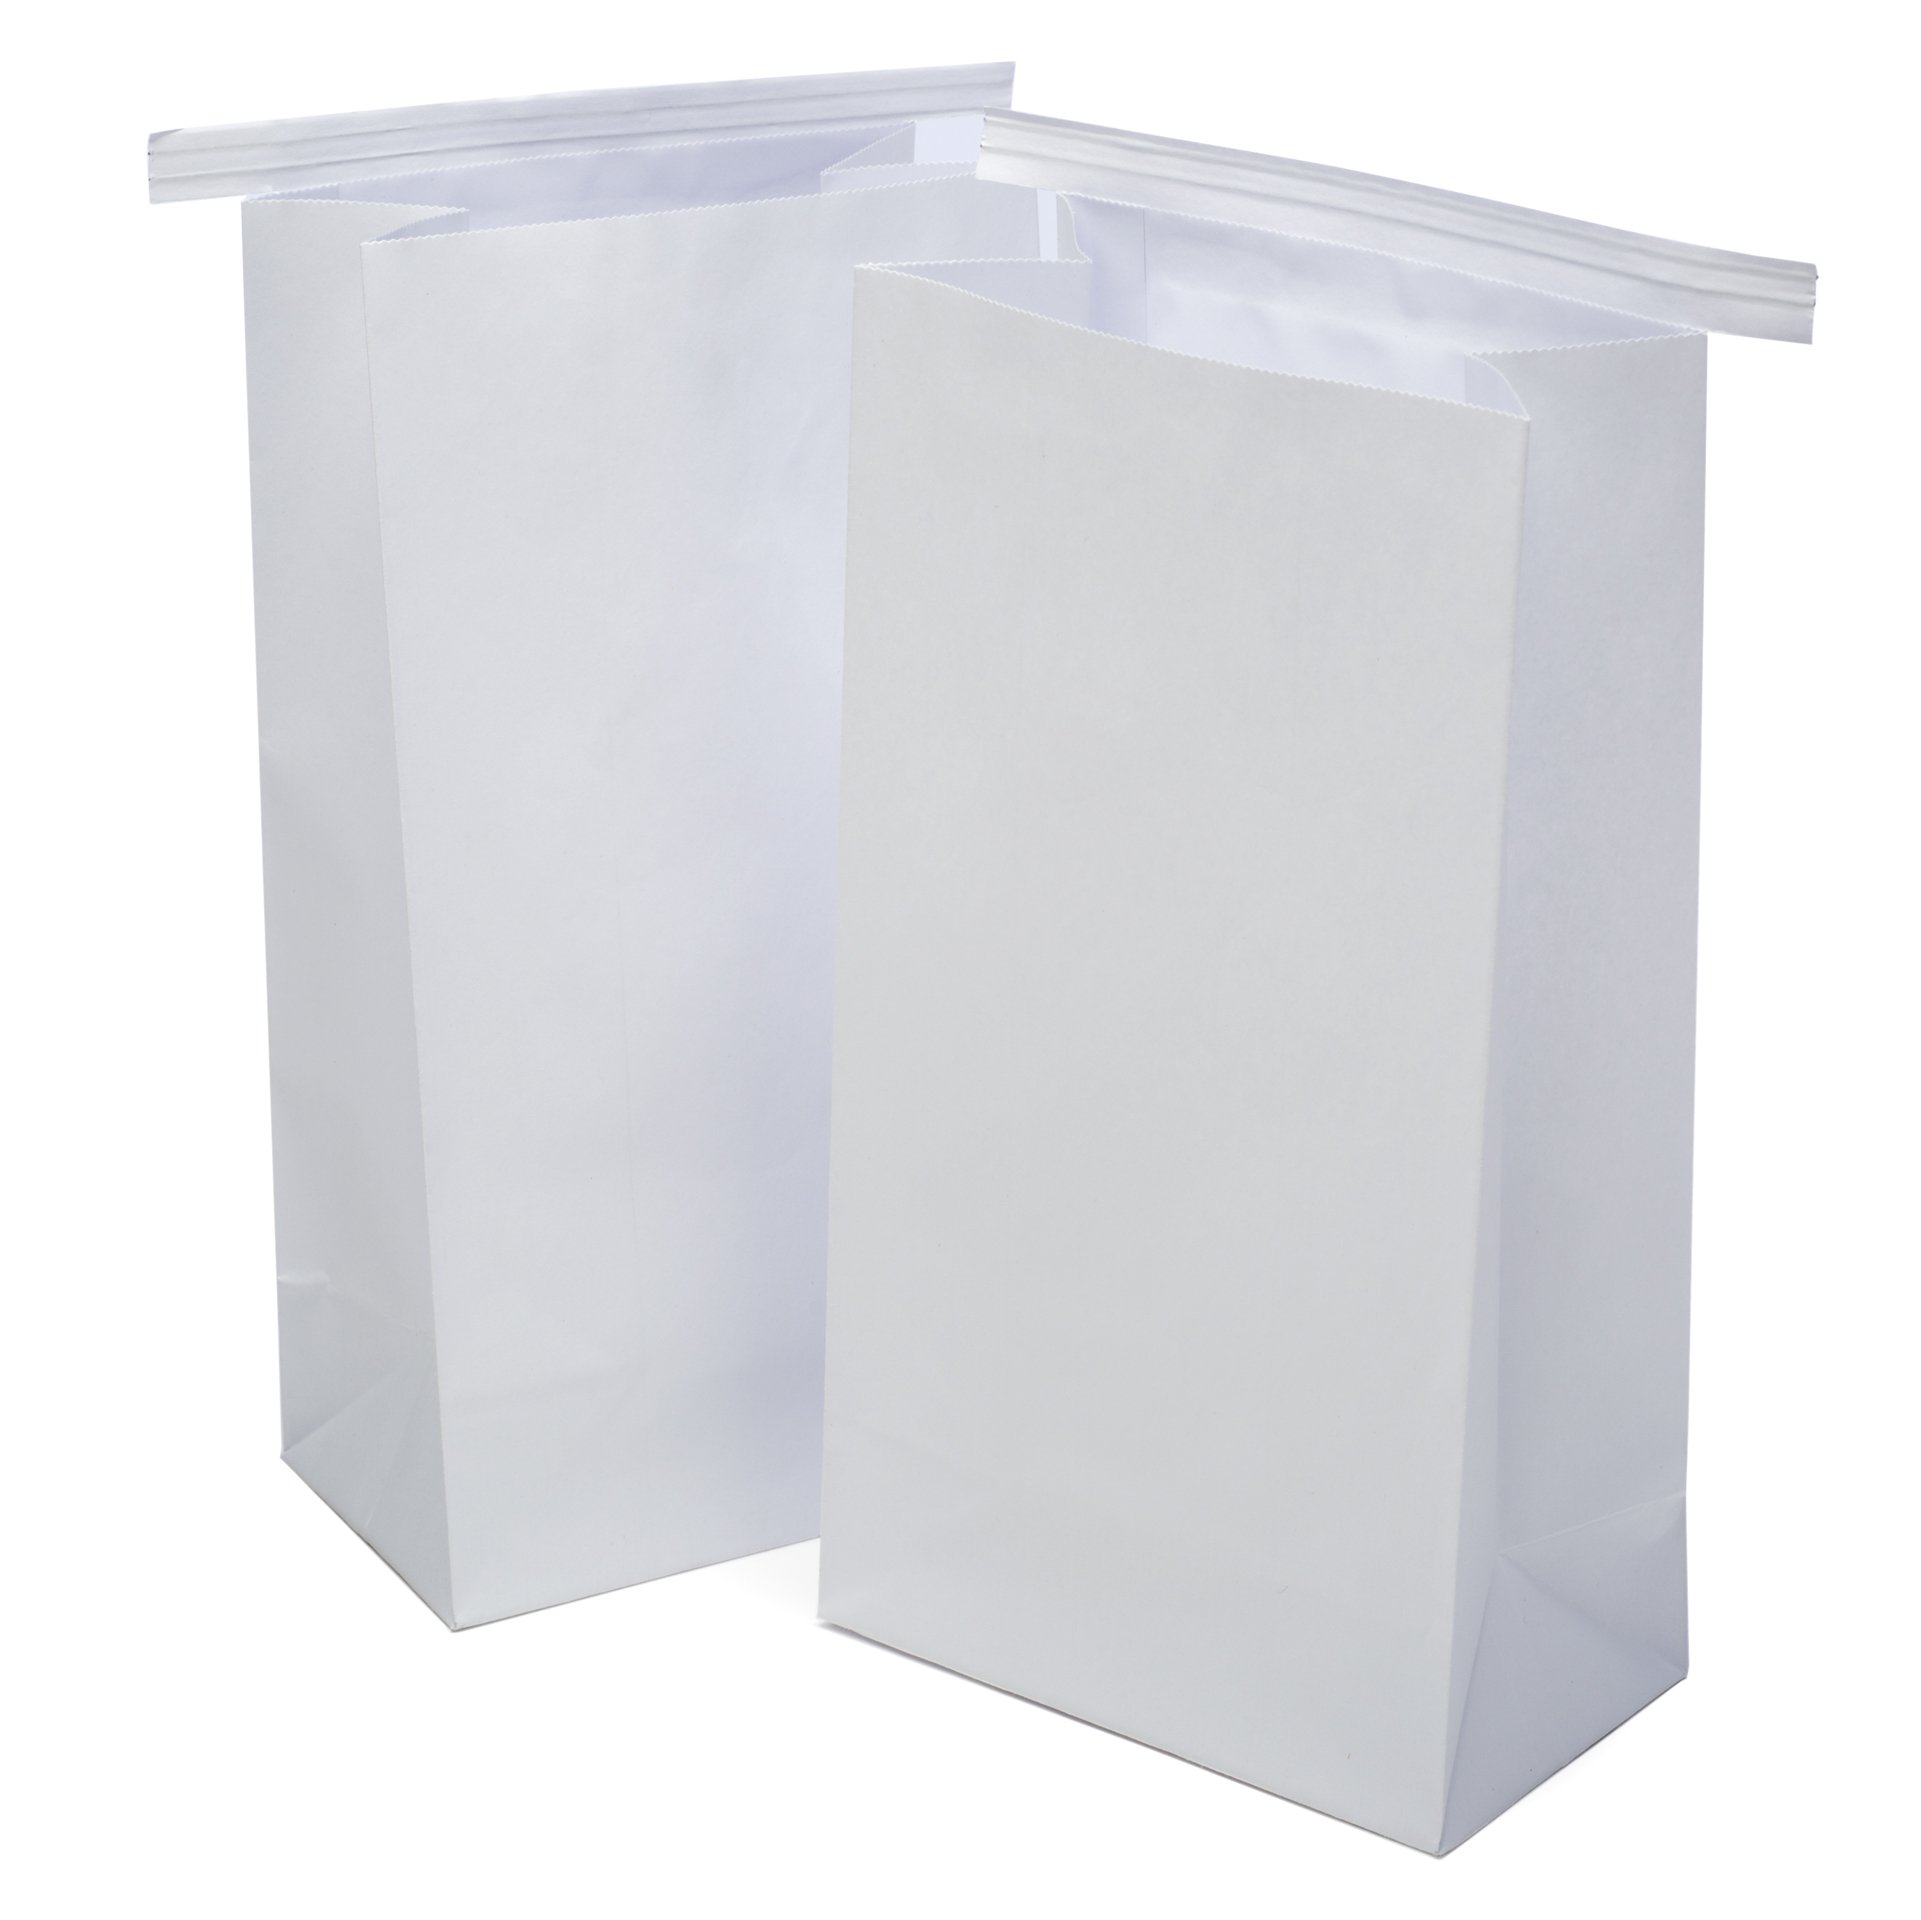 Classic White Vomit/Barf Bags - Travel Motion & Morning Sickness Bags (25/Pk)